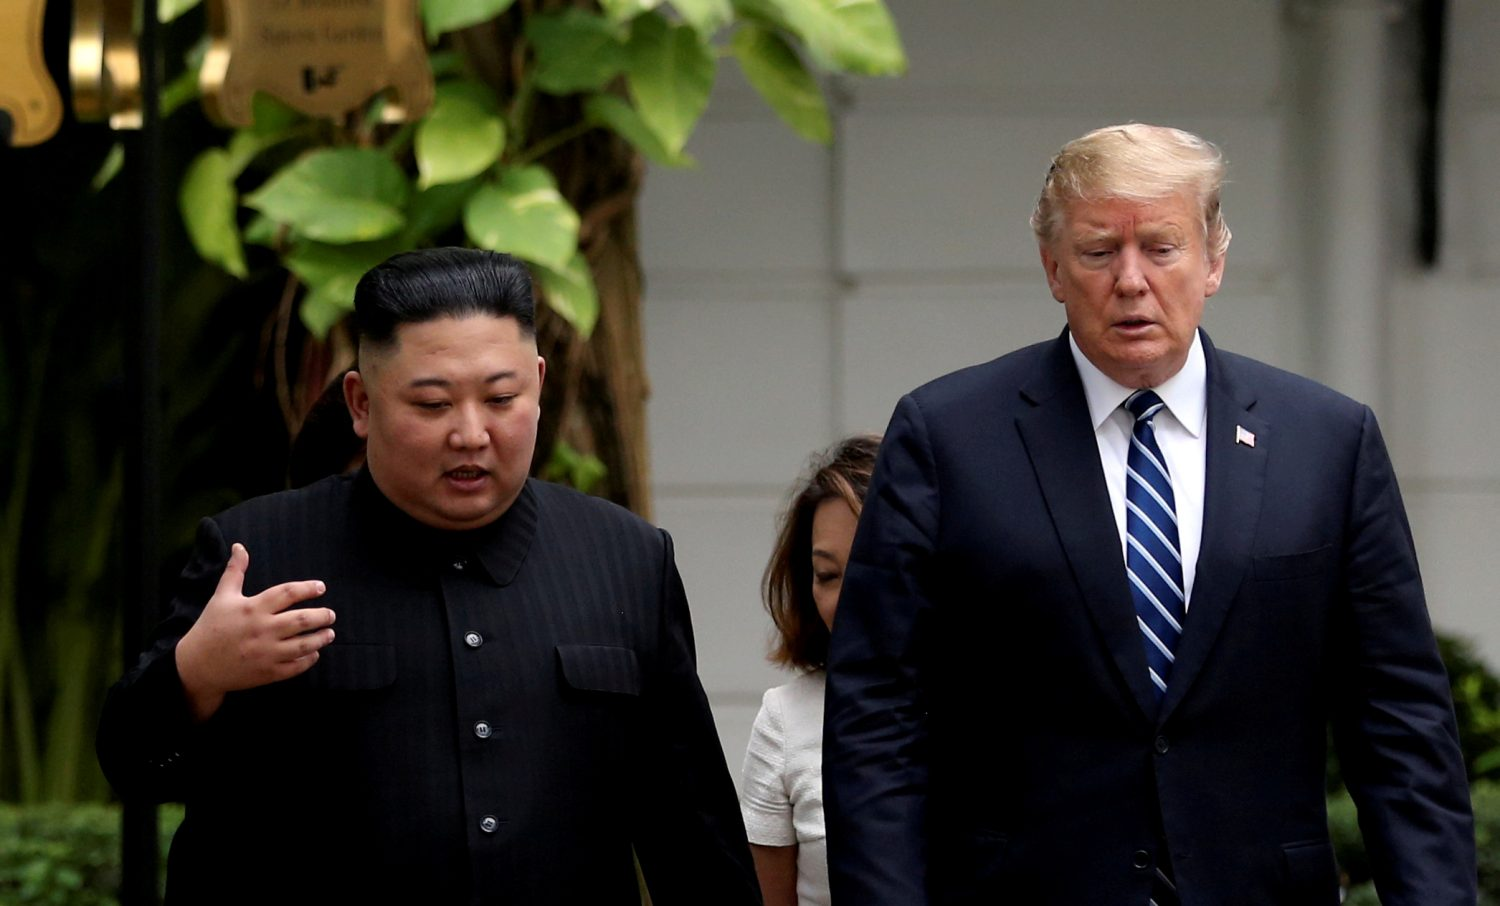 FILE PHOTO: North Korea's leader Kim Jong Un and U.S. President Donald Trump talk in the garden of the Metropole hotel during the second North Korea-U.S. summit in Hanoi, Vietnam February 28, 2019. REUTERS/Leah Millis